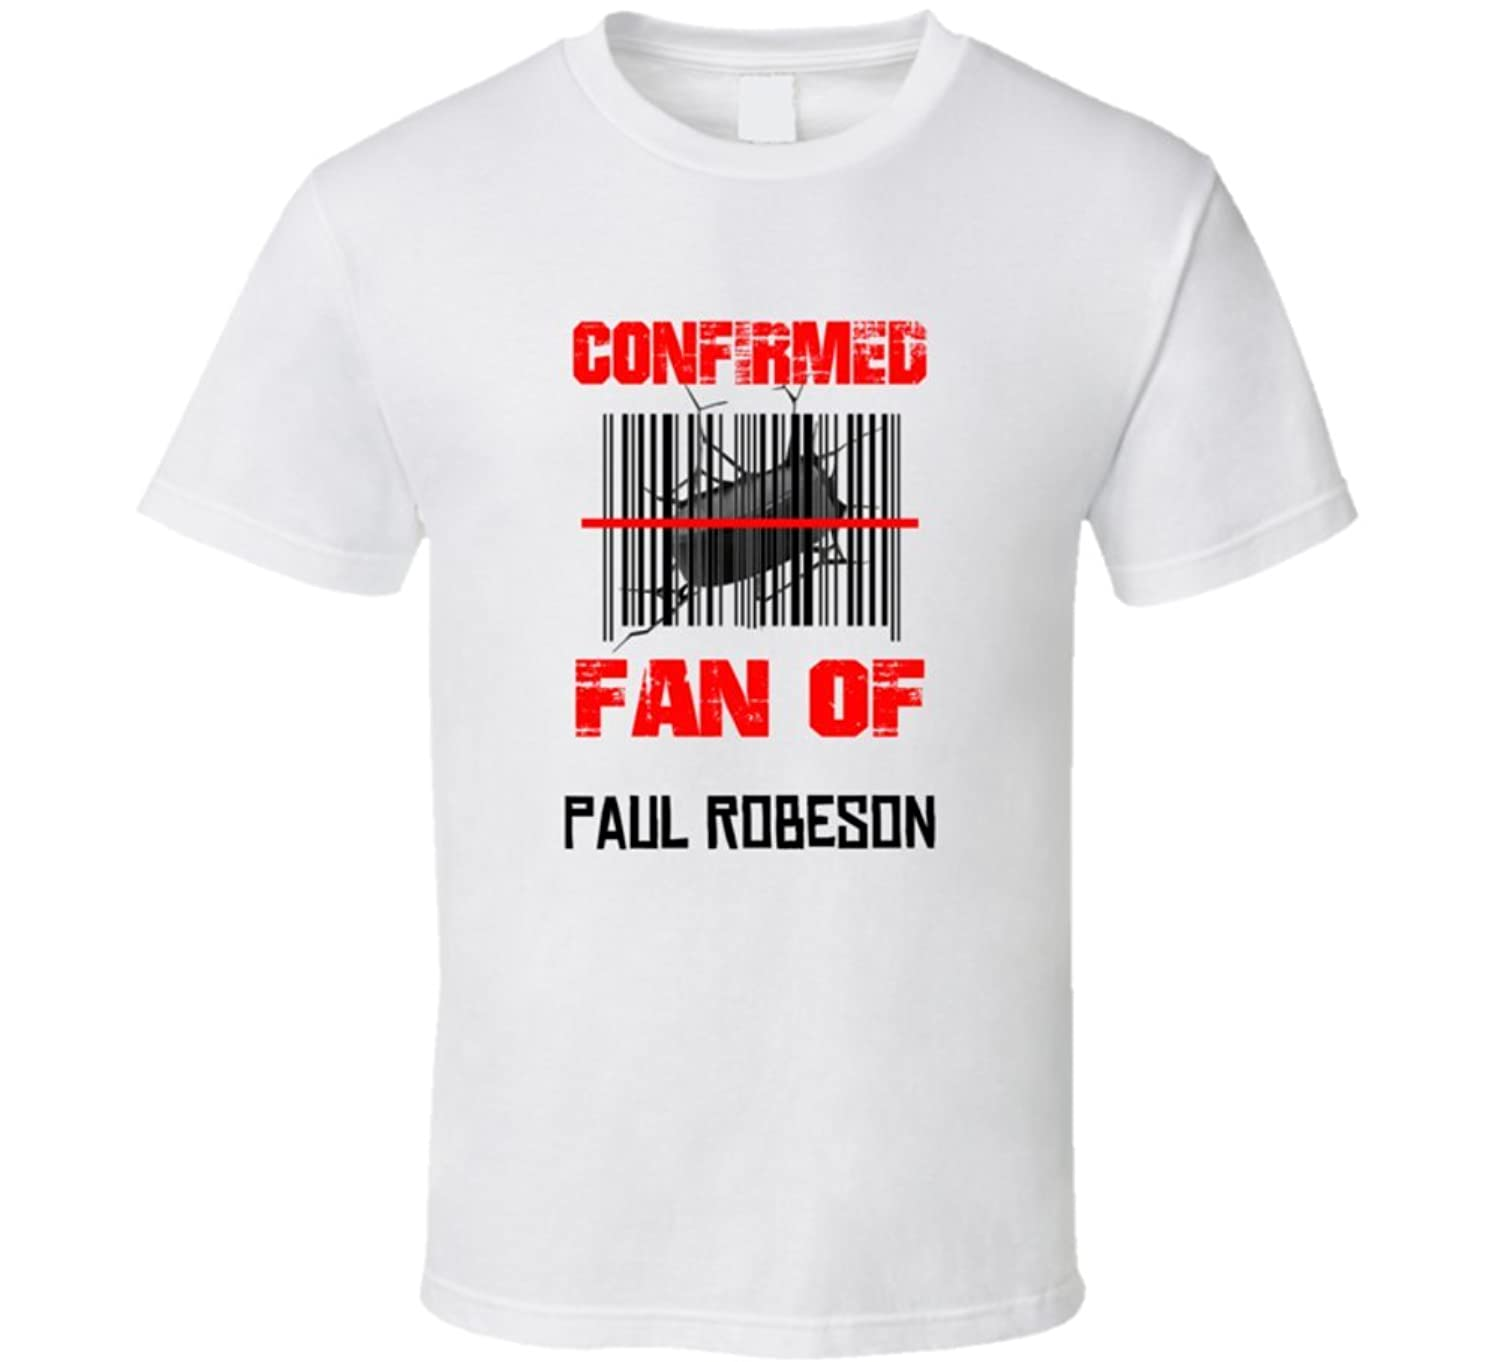 Paul Robeson NHL Scanned Barcode Fan T shirt S White